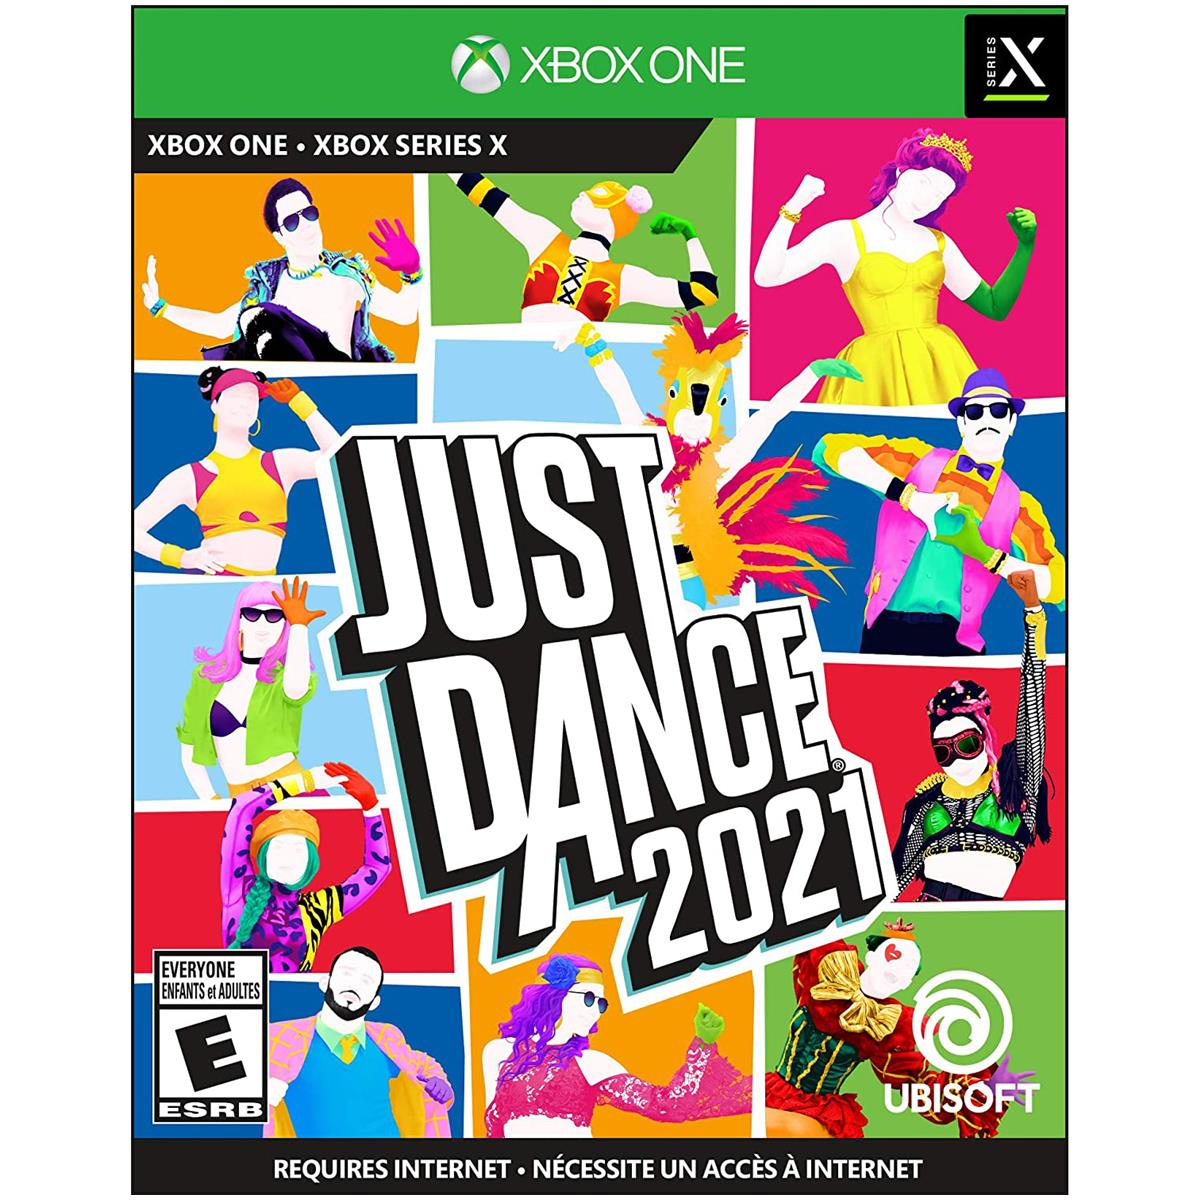 Just Dance 2021 - Xbox One, Xbox Series X